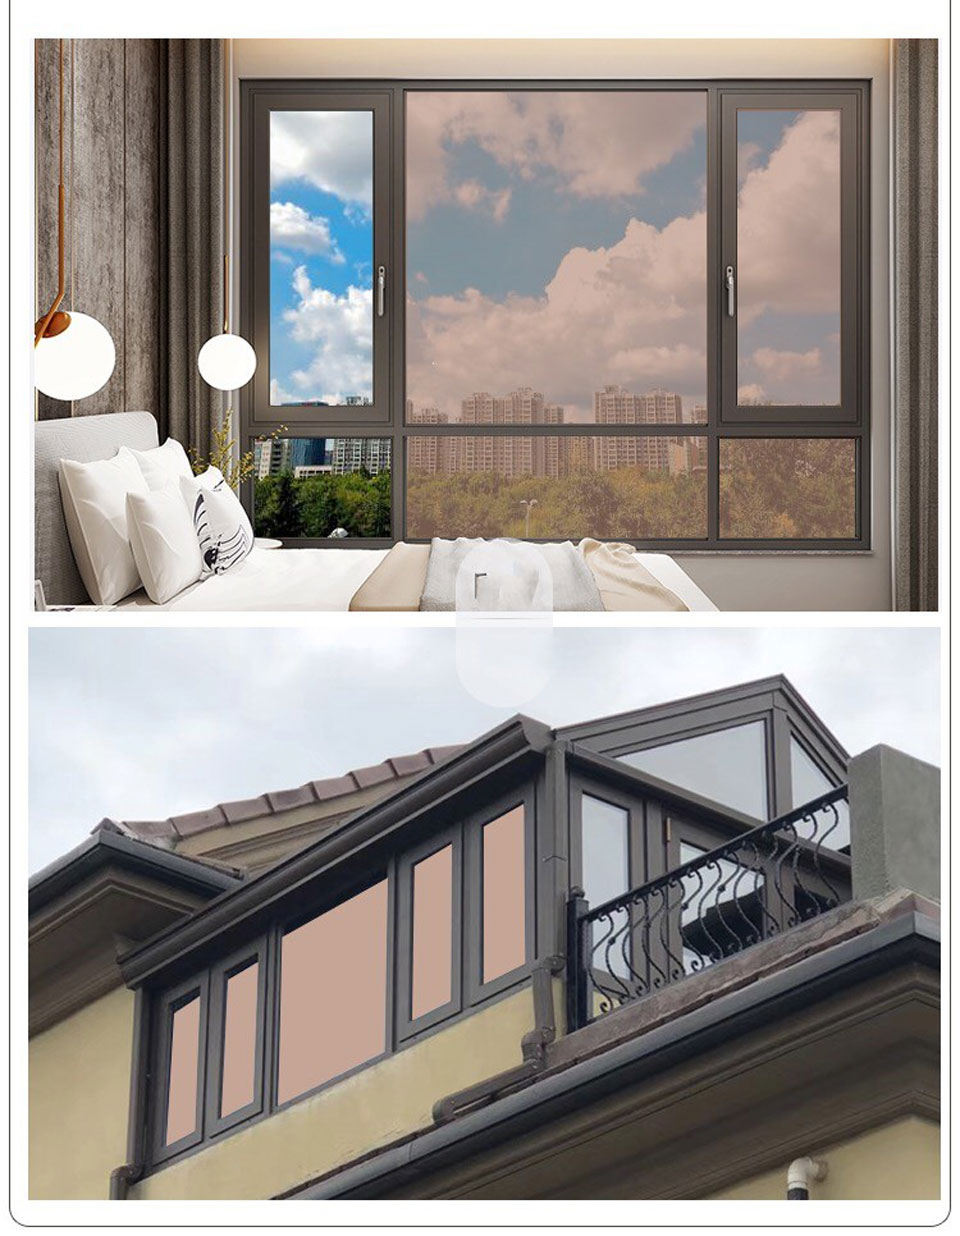 One way Perspective Solar Mirror Film Glass Film Window Stickers Anti UV Tint Office Building Glass Window Decorative Film 300cm in Decorative Films from Home Garden